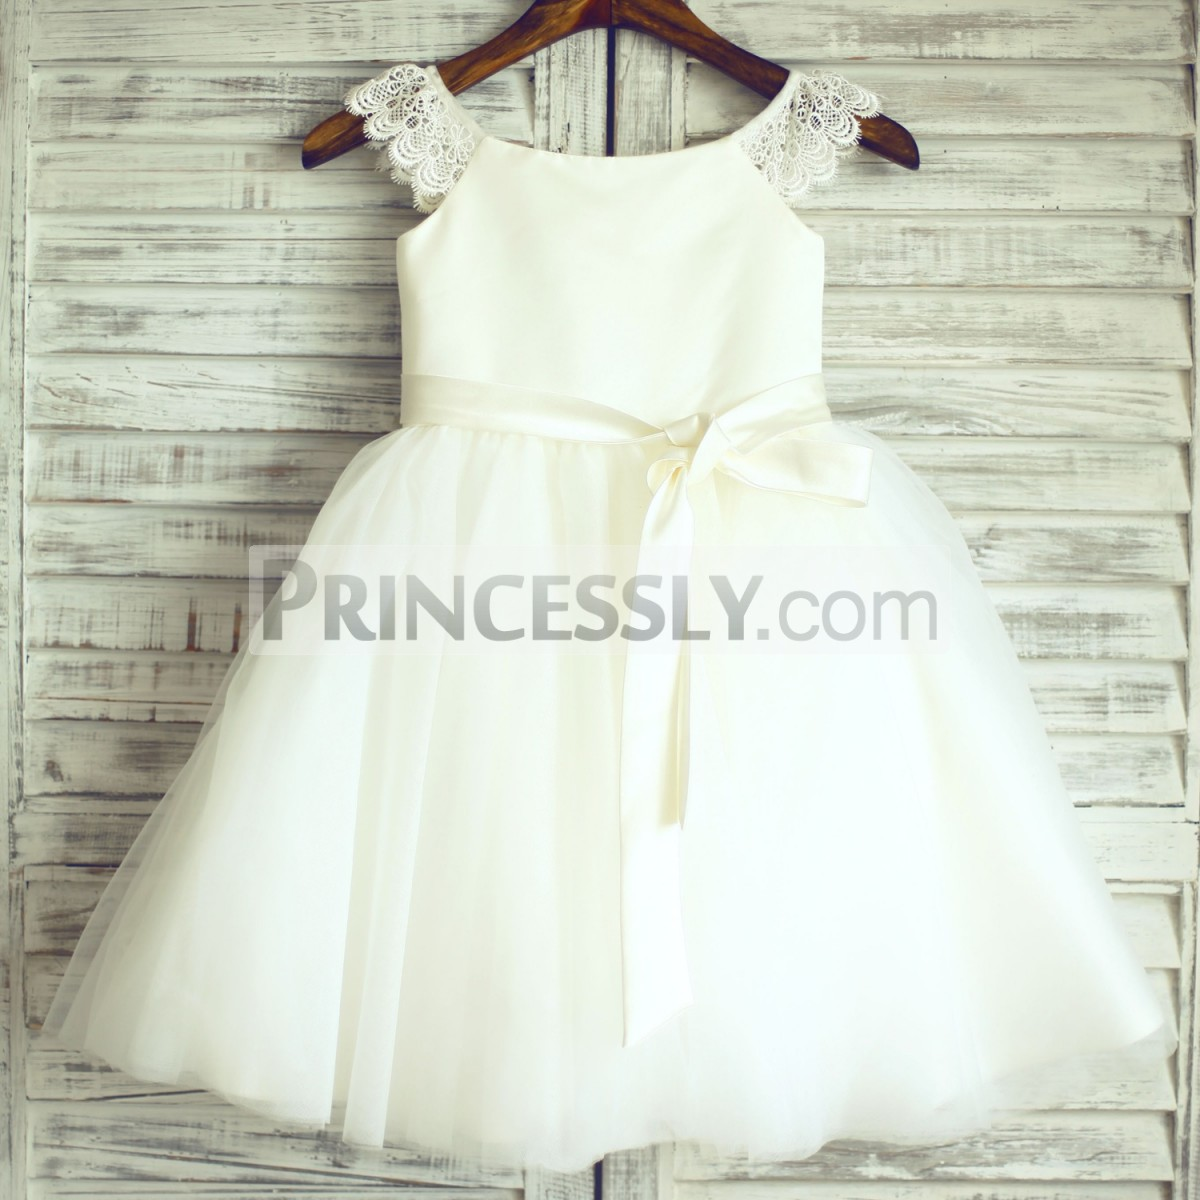 Princessly.com-K1000340-Ivory Lace Cap Sleeves Tulle Flower Girl Dress with ivory sash-31